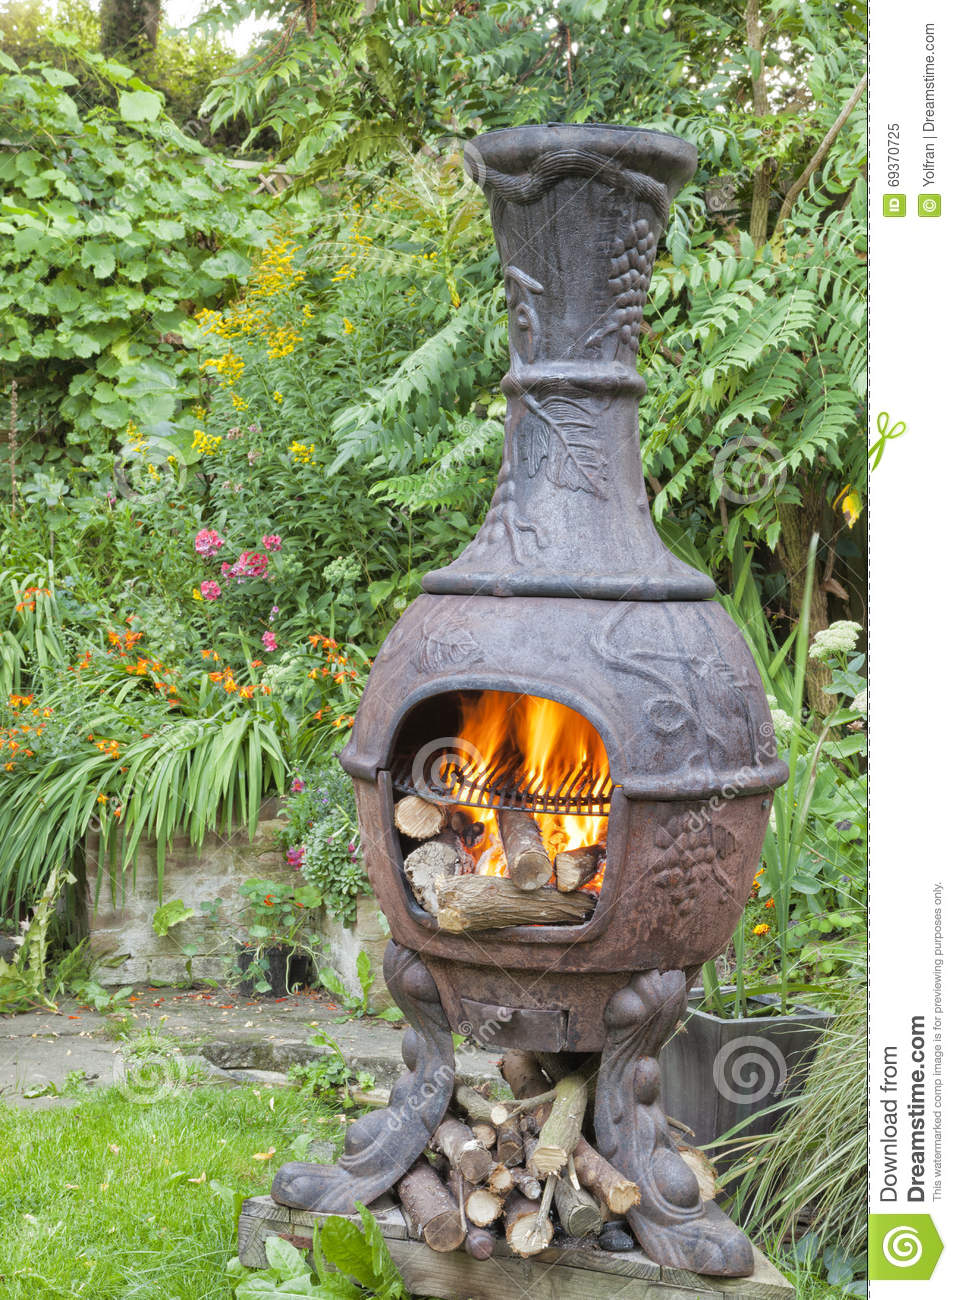 flammes du feu en bois dans le barbecue de jardin de chiminea image stock image du fleurs. Black Bedroom Furniture Sets. Home Design Ideas